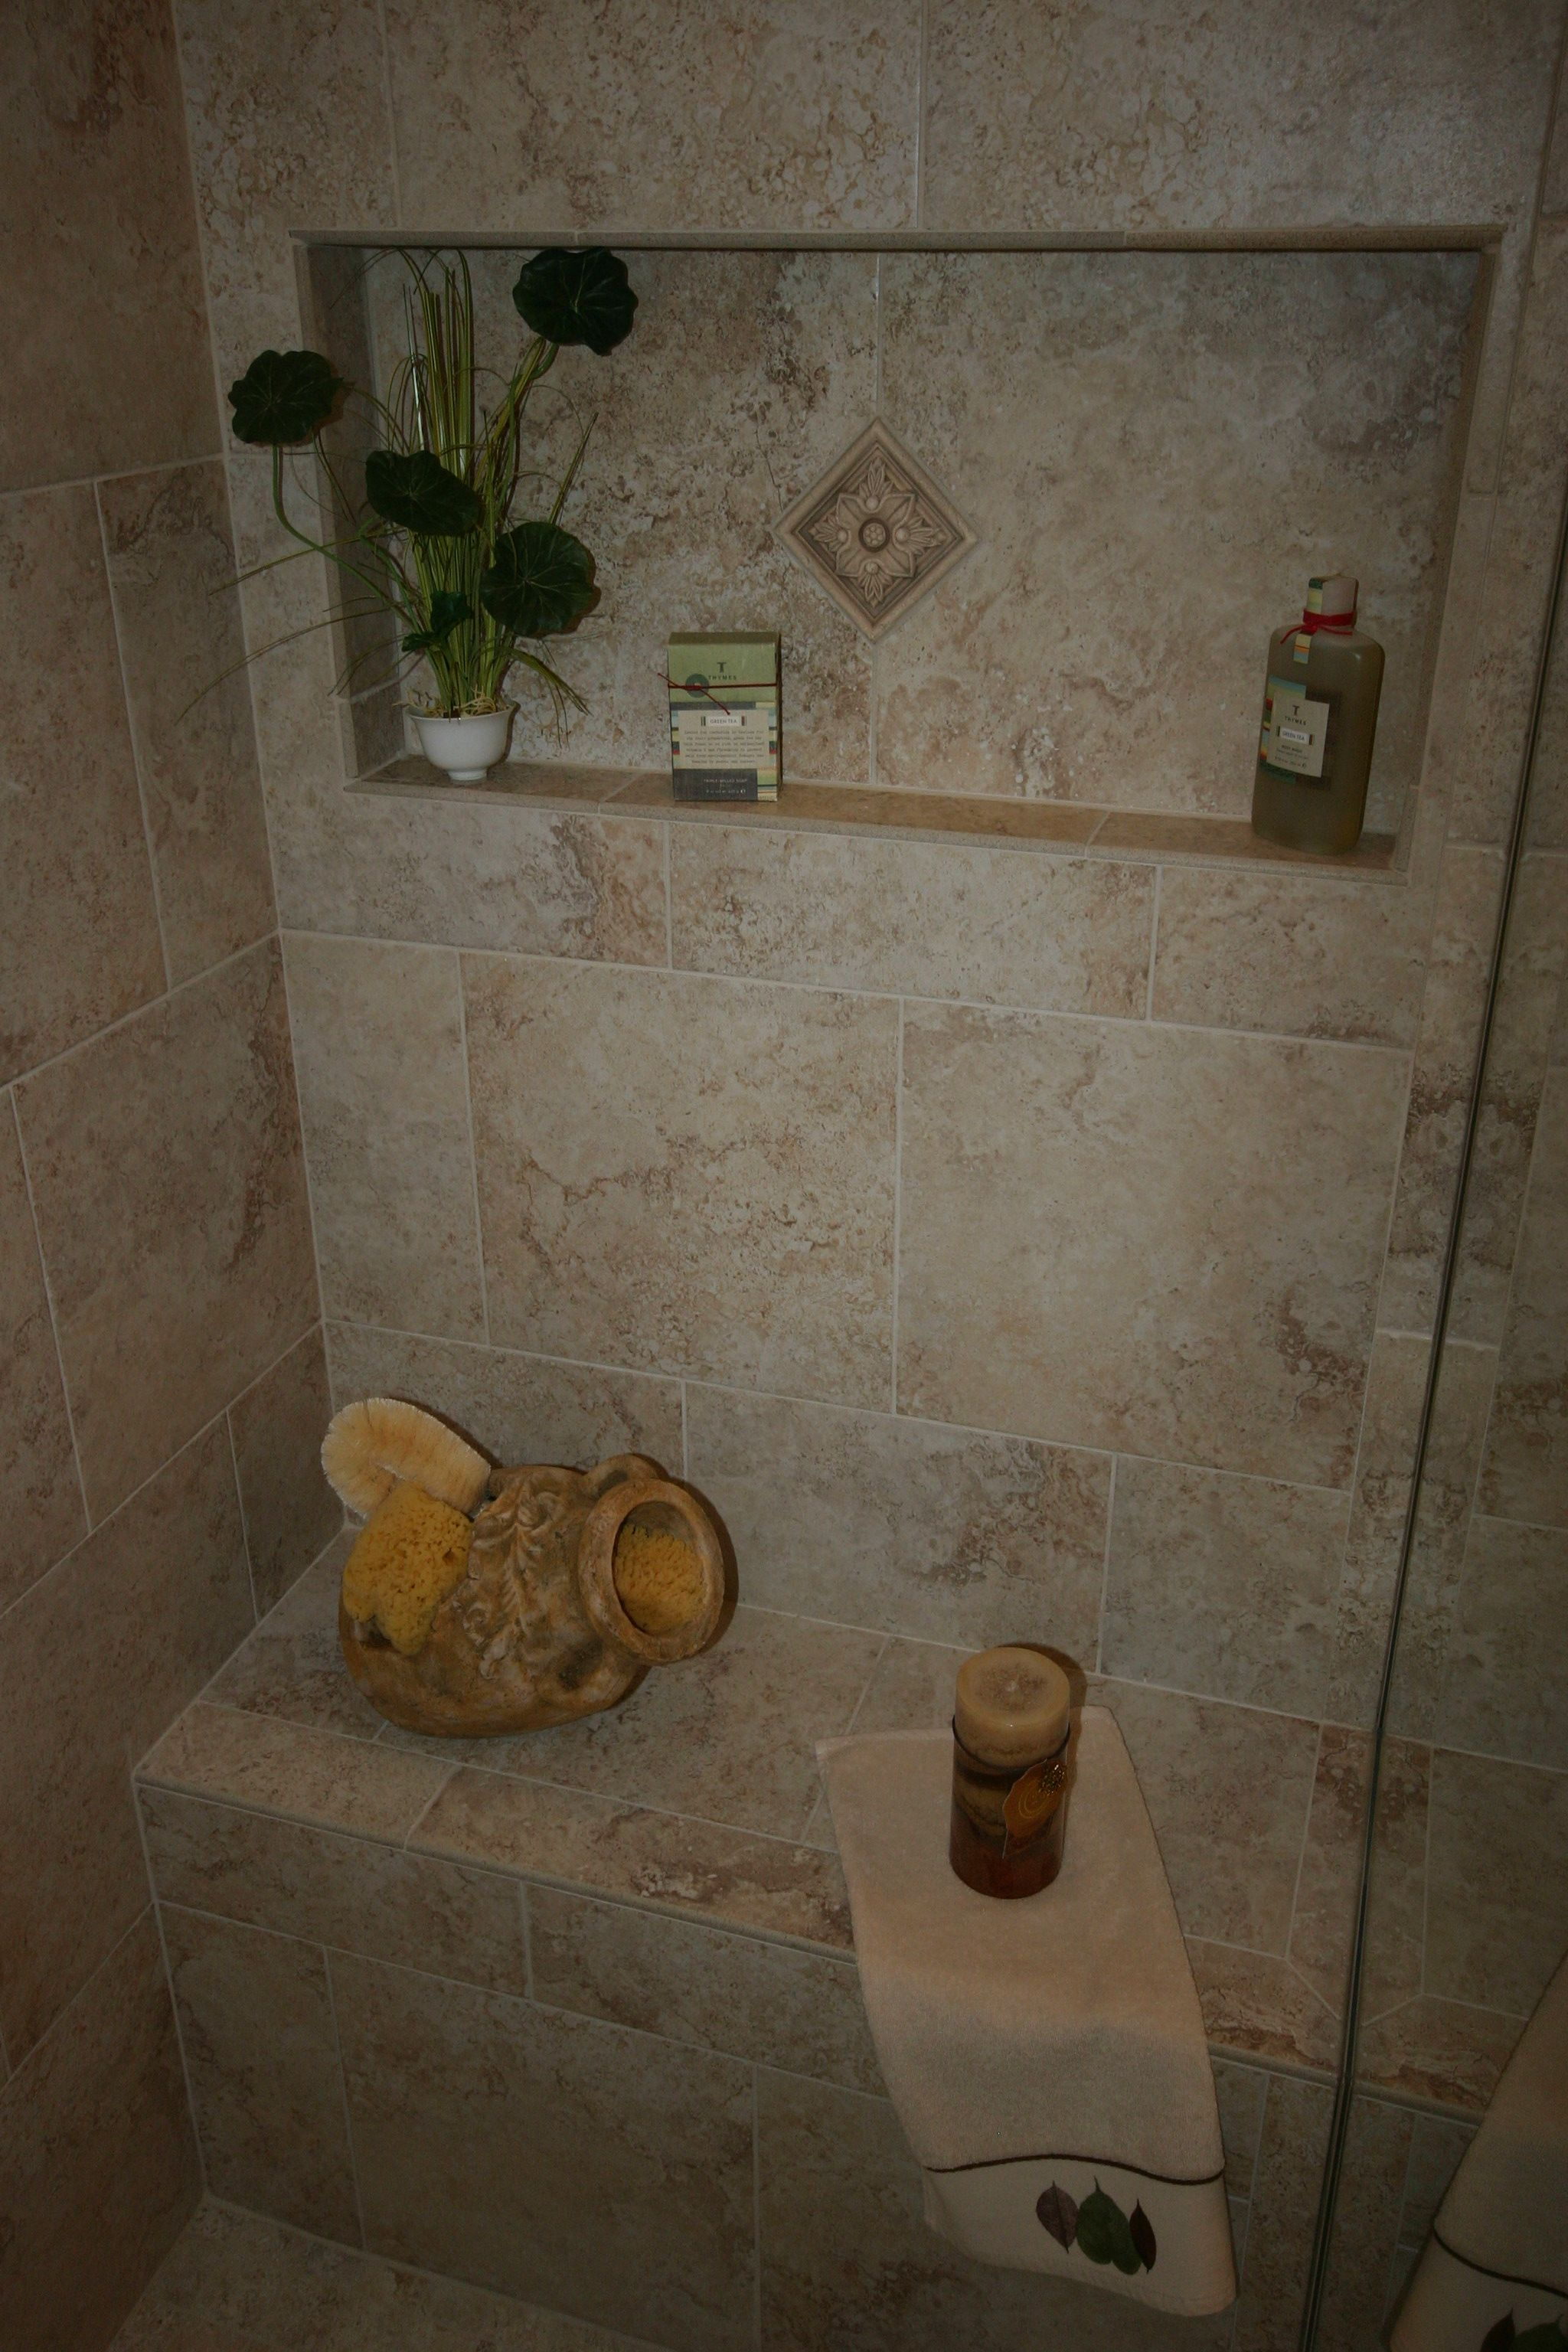 Built-in shower seat and niche | Bathrooms | Pinterest | Shower seat ...